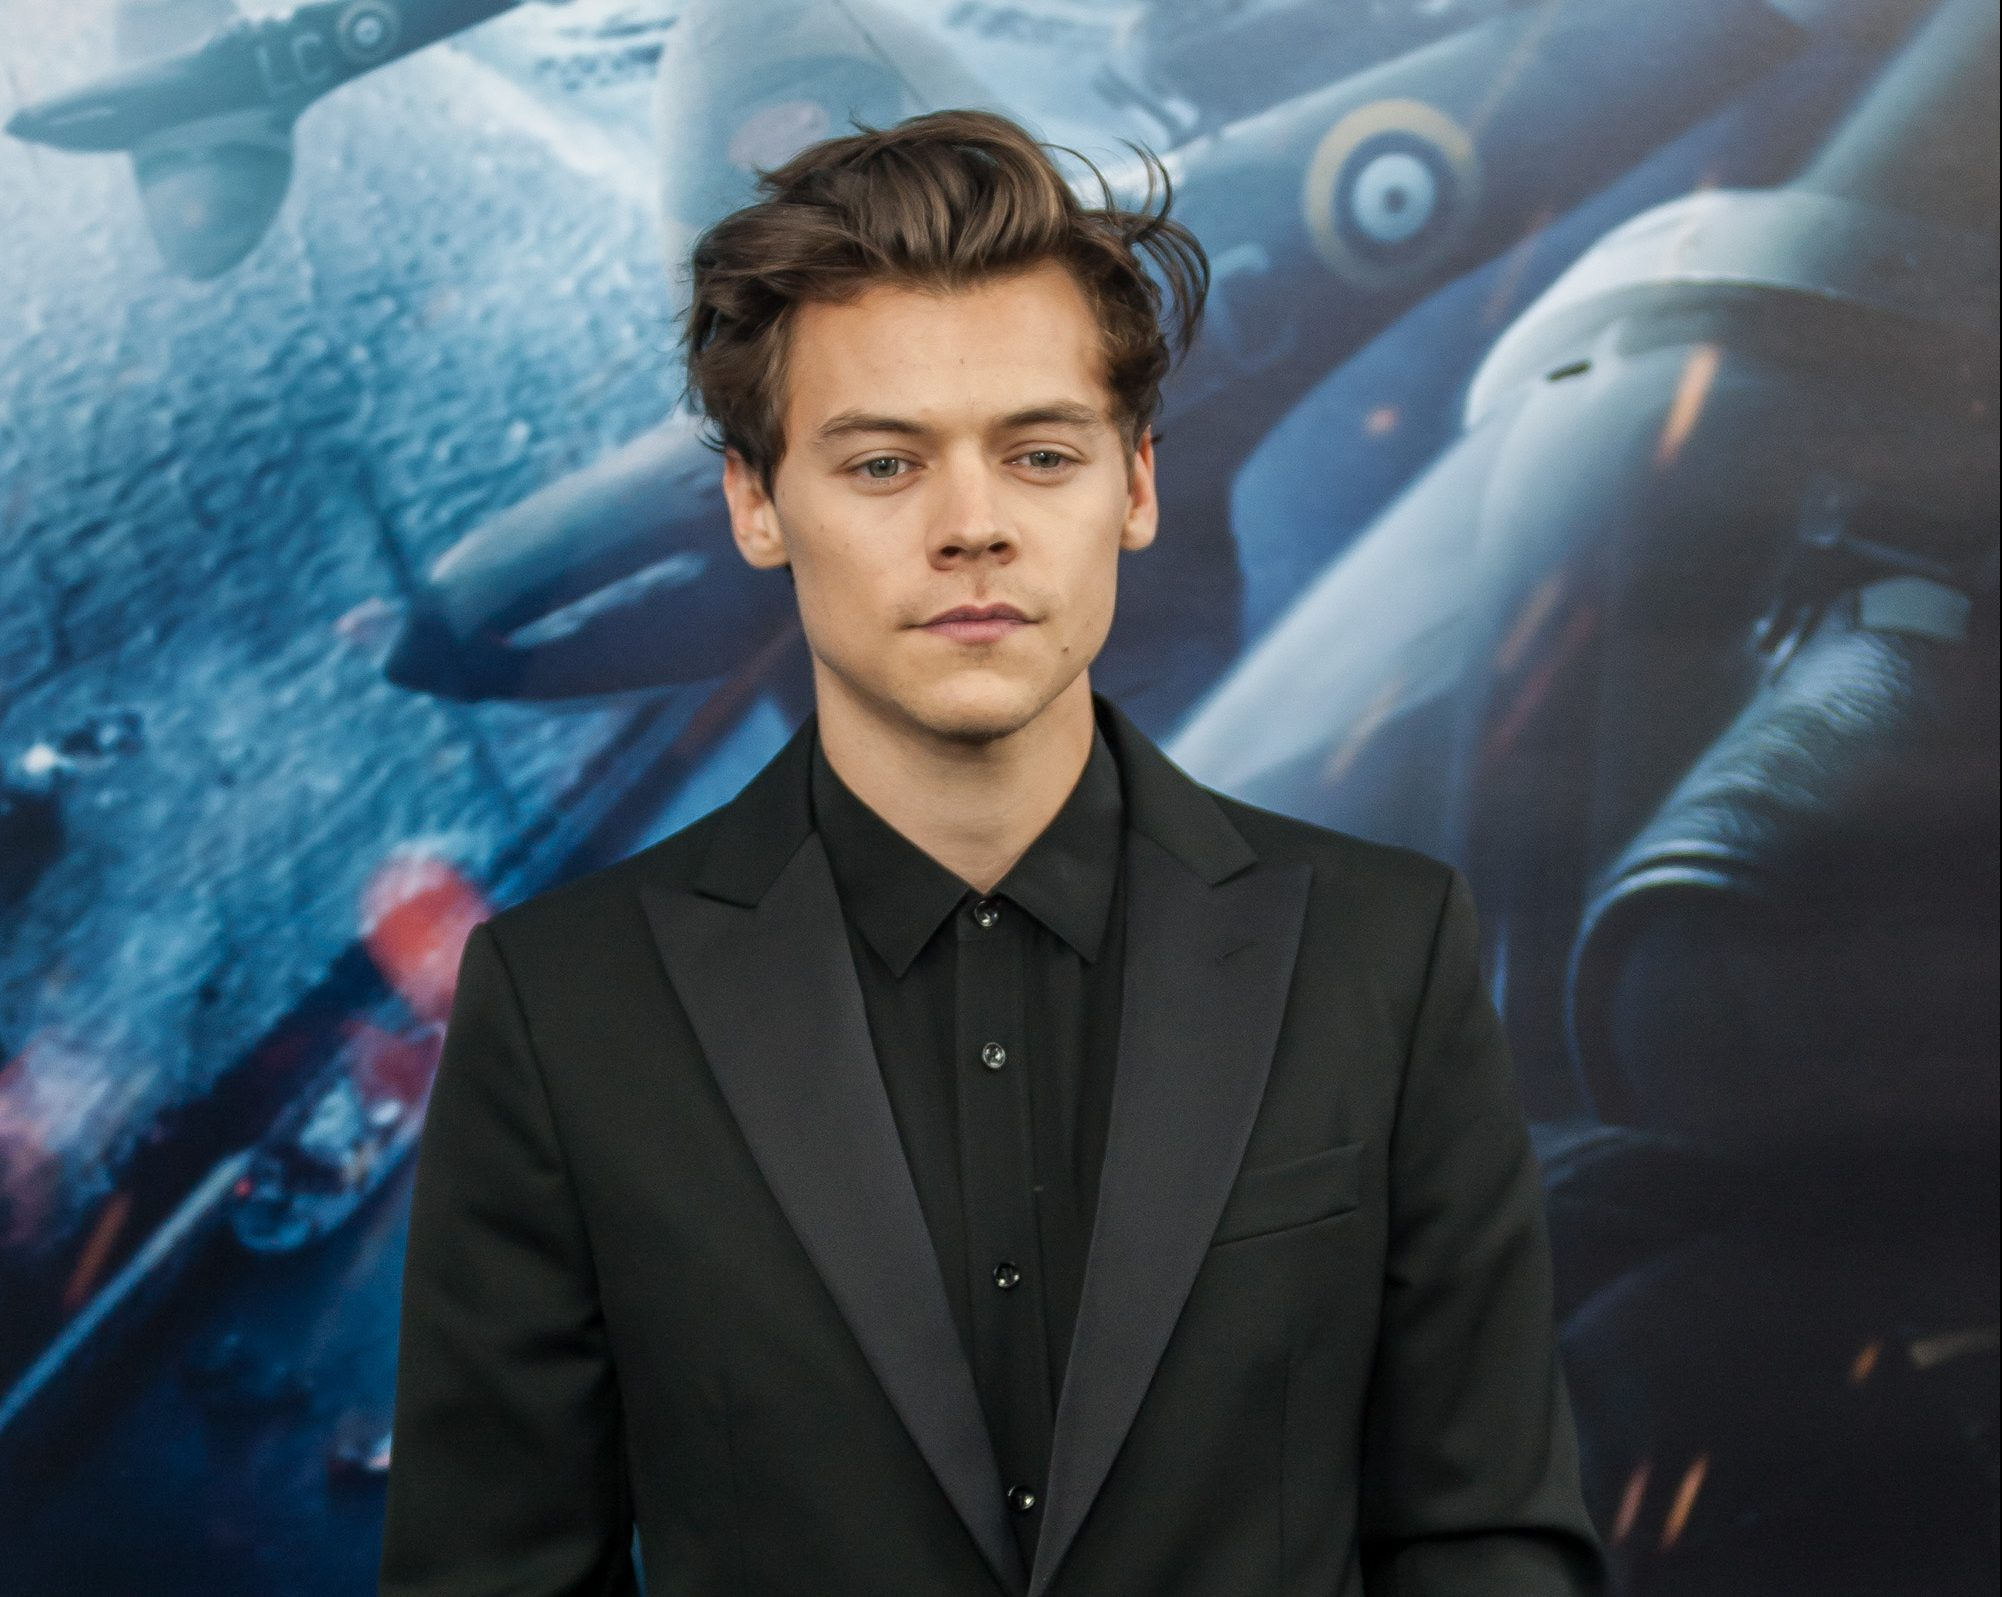 Harry Styles could be the next James Bond